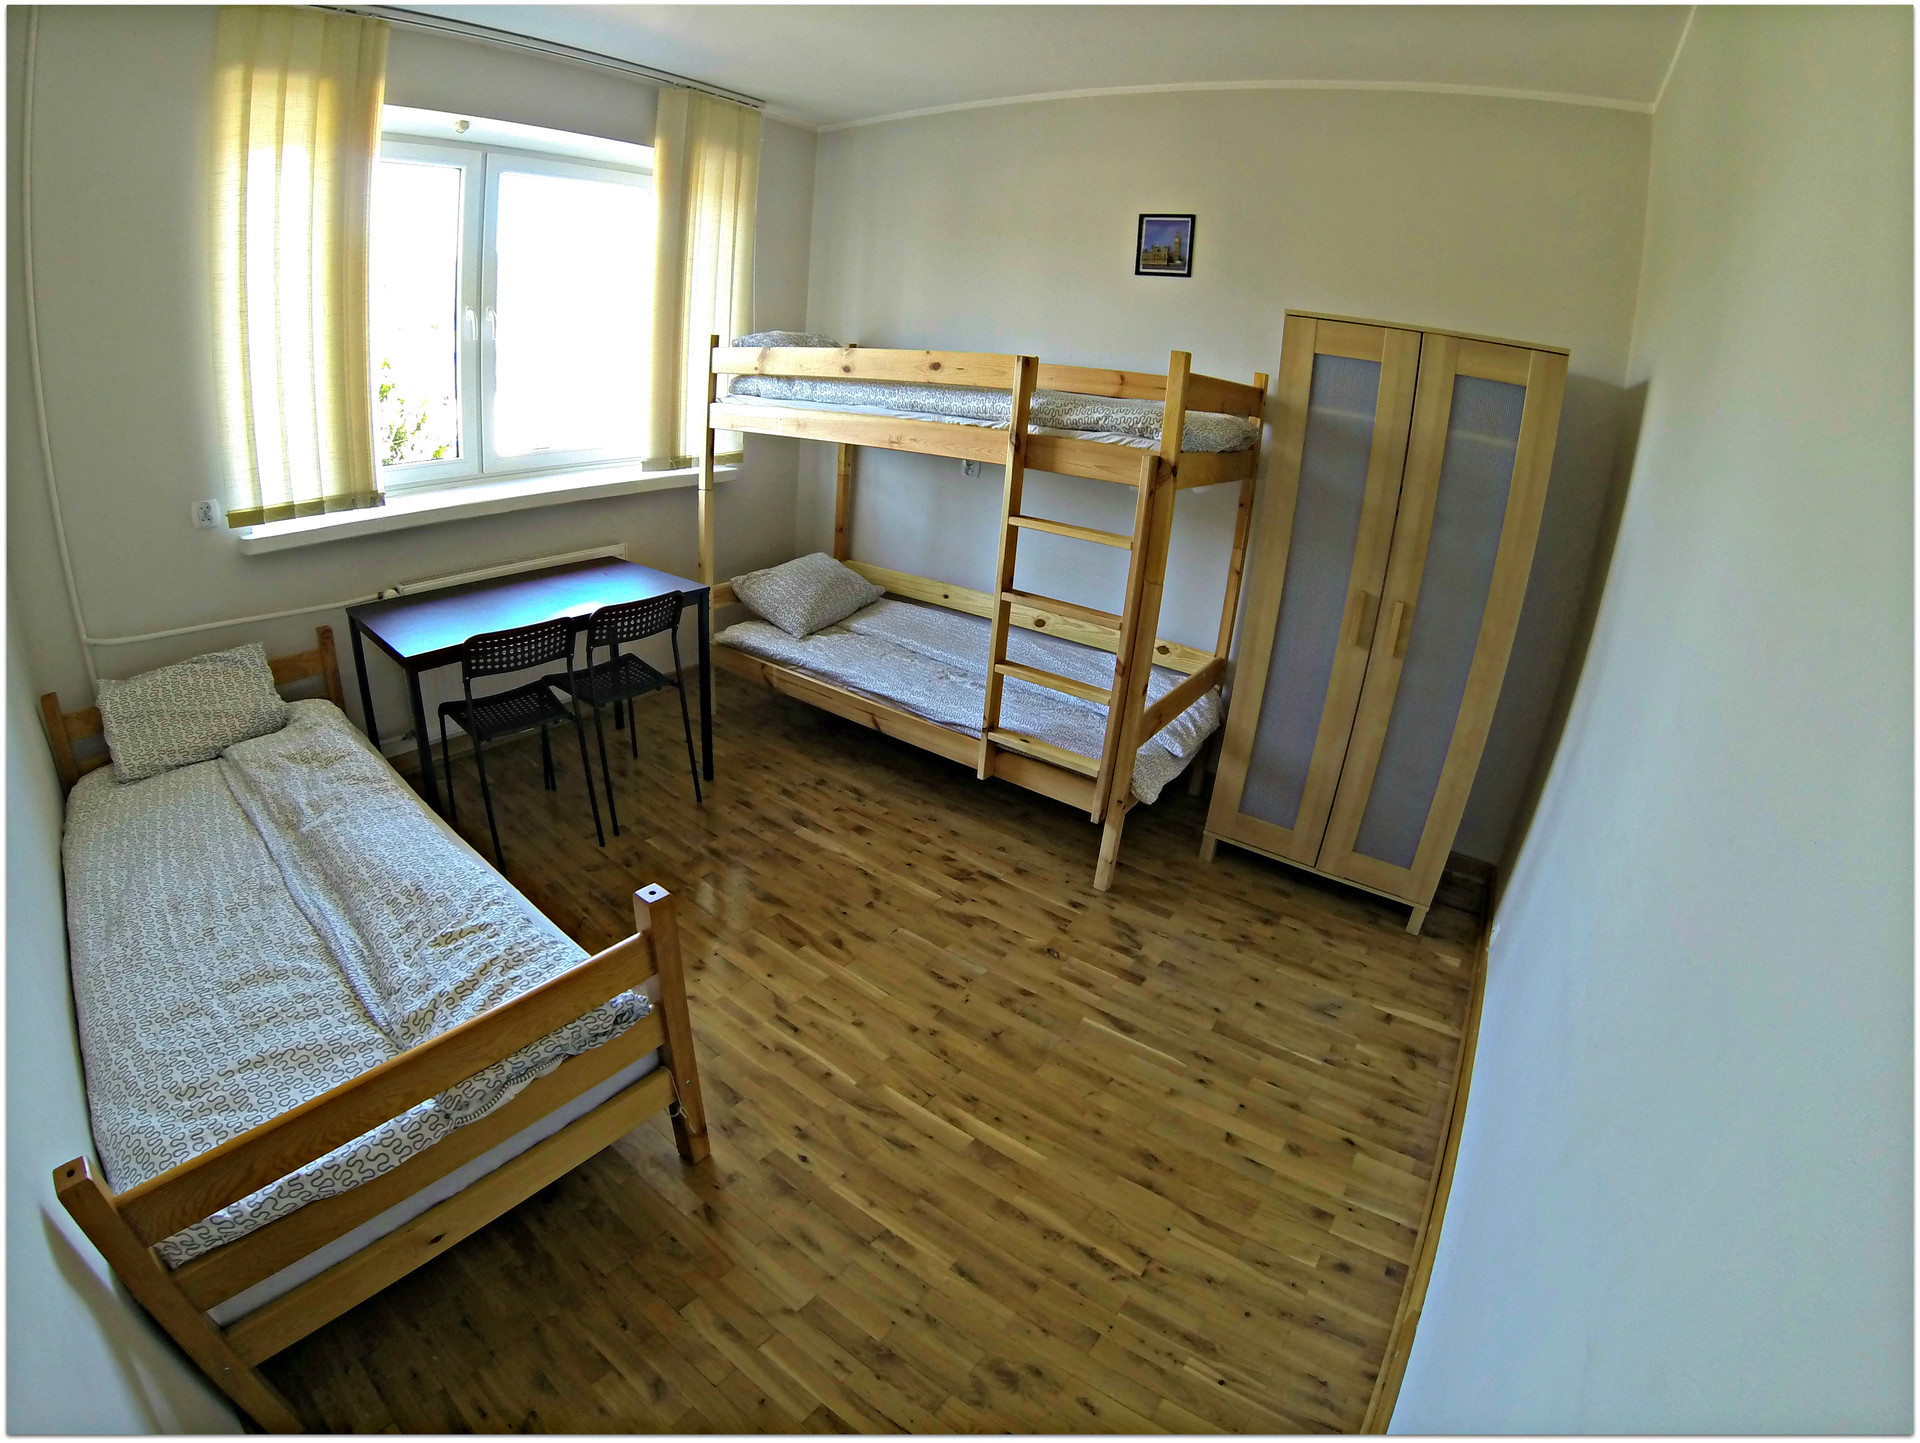 place-double-room-girl-13-min-centrum-f4de7d2553b794c8e22b3c6c23e4a0c6